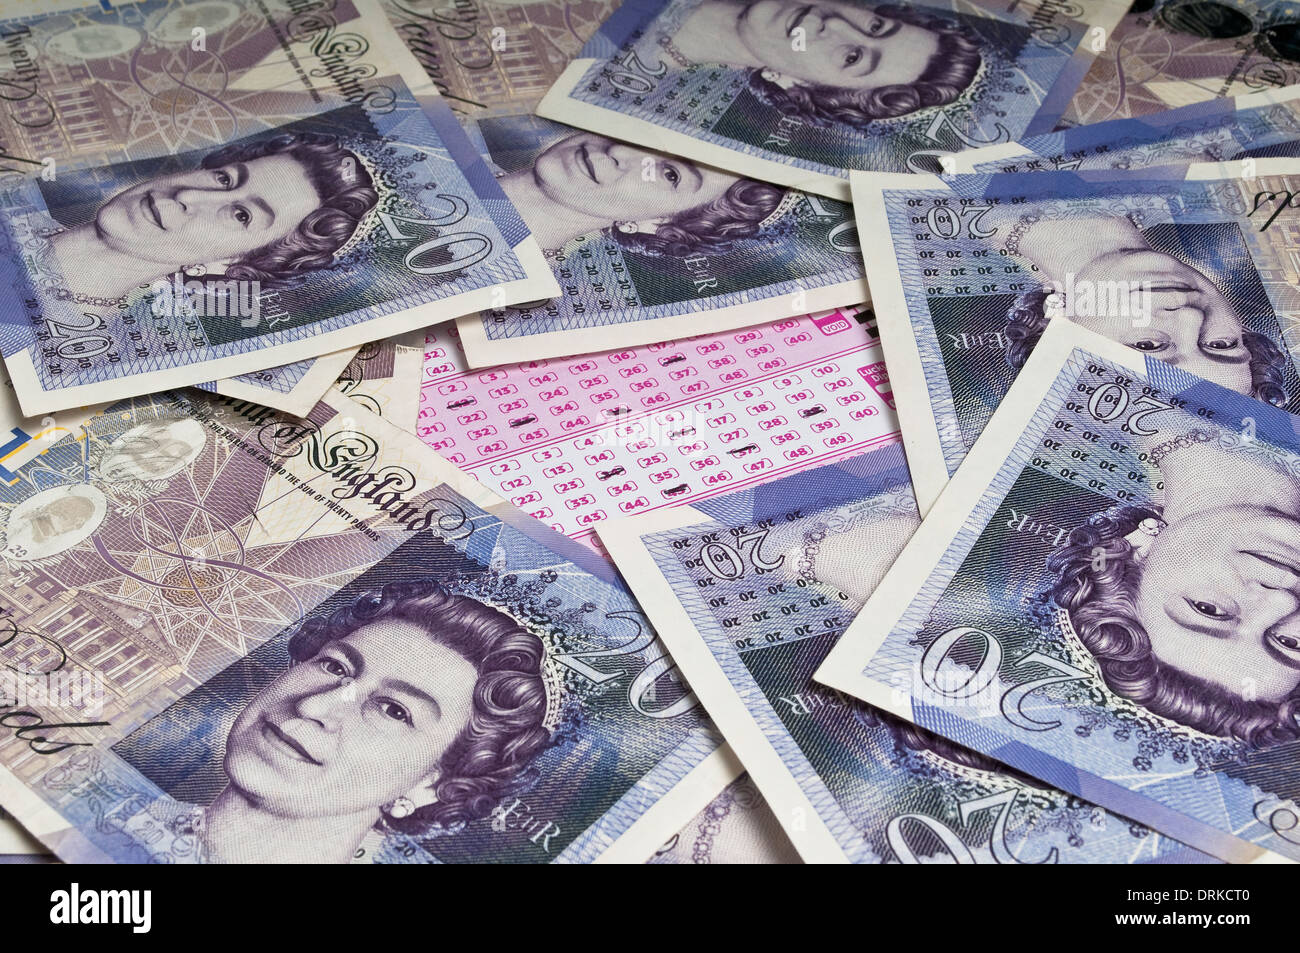 Marked lottery ticket in the middle of a pile of scattered twenty pound notes Stock Photo